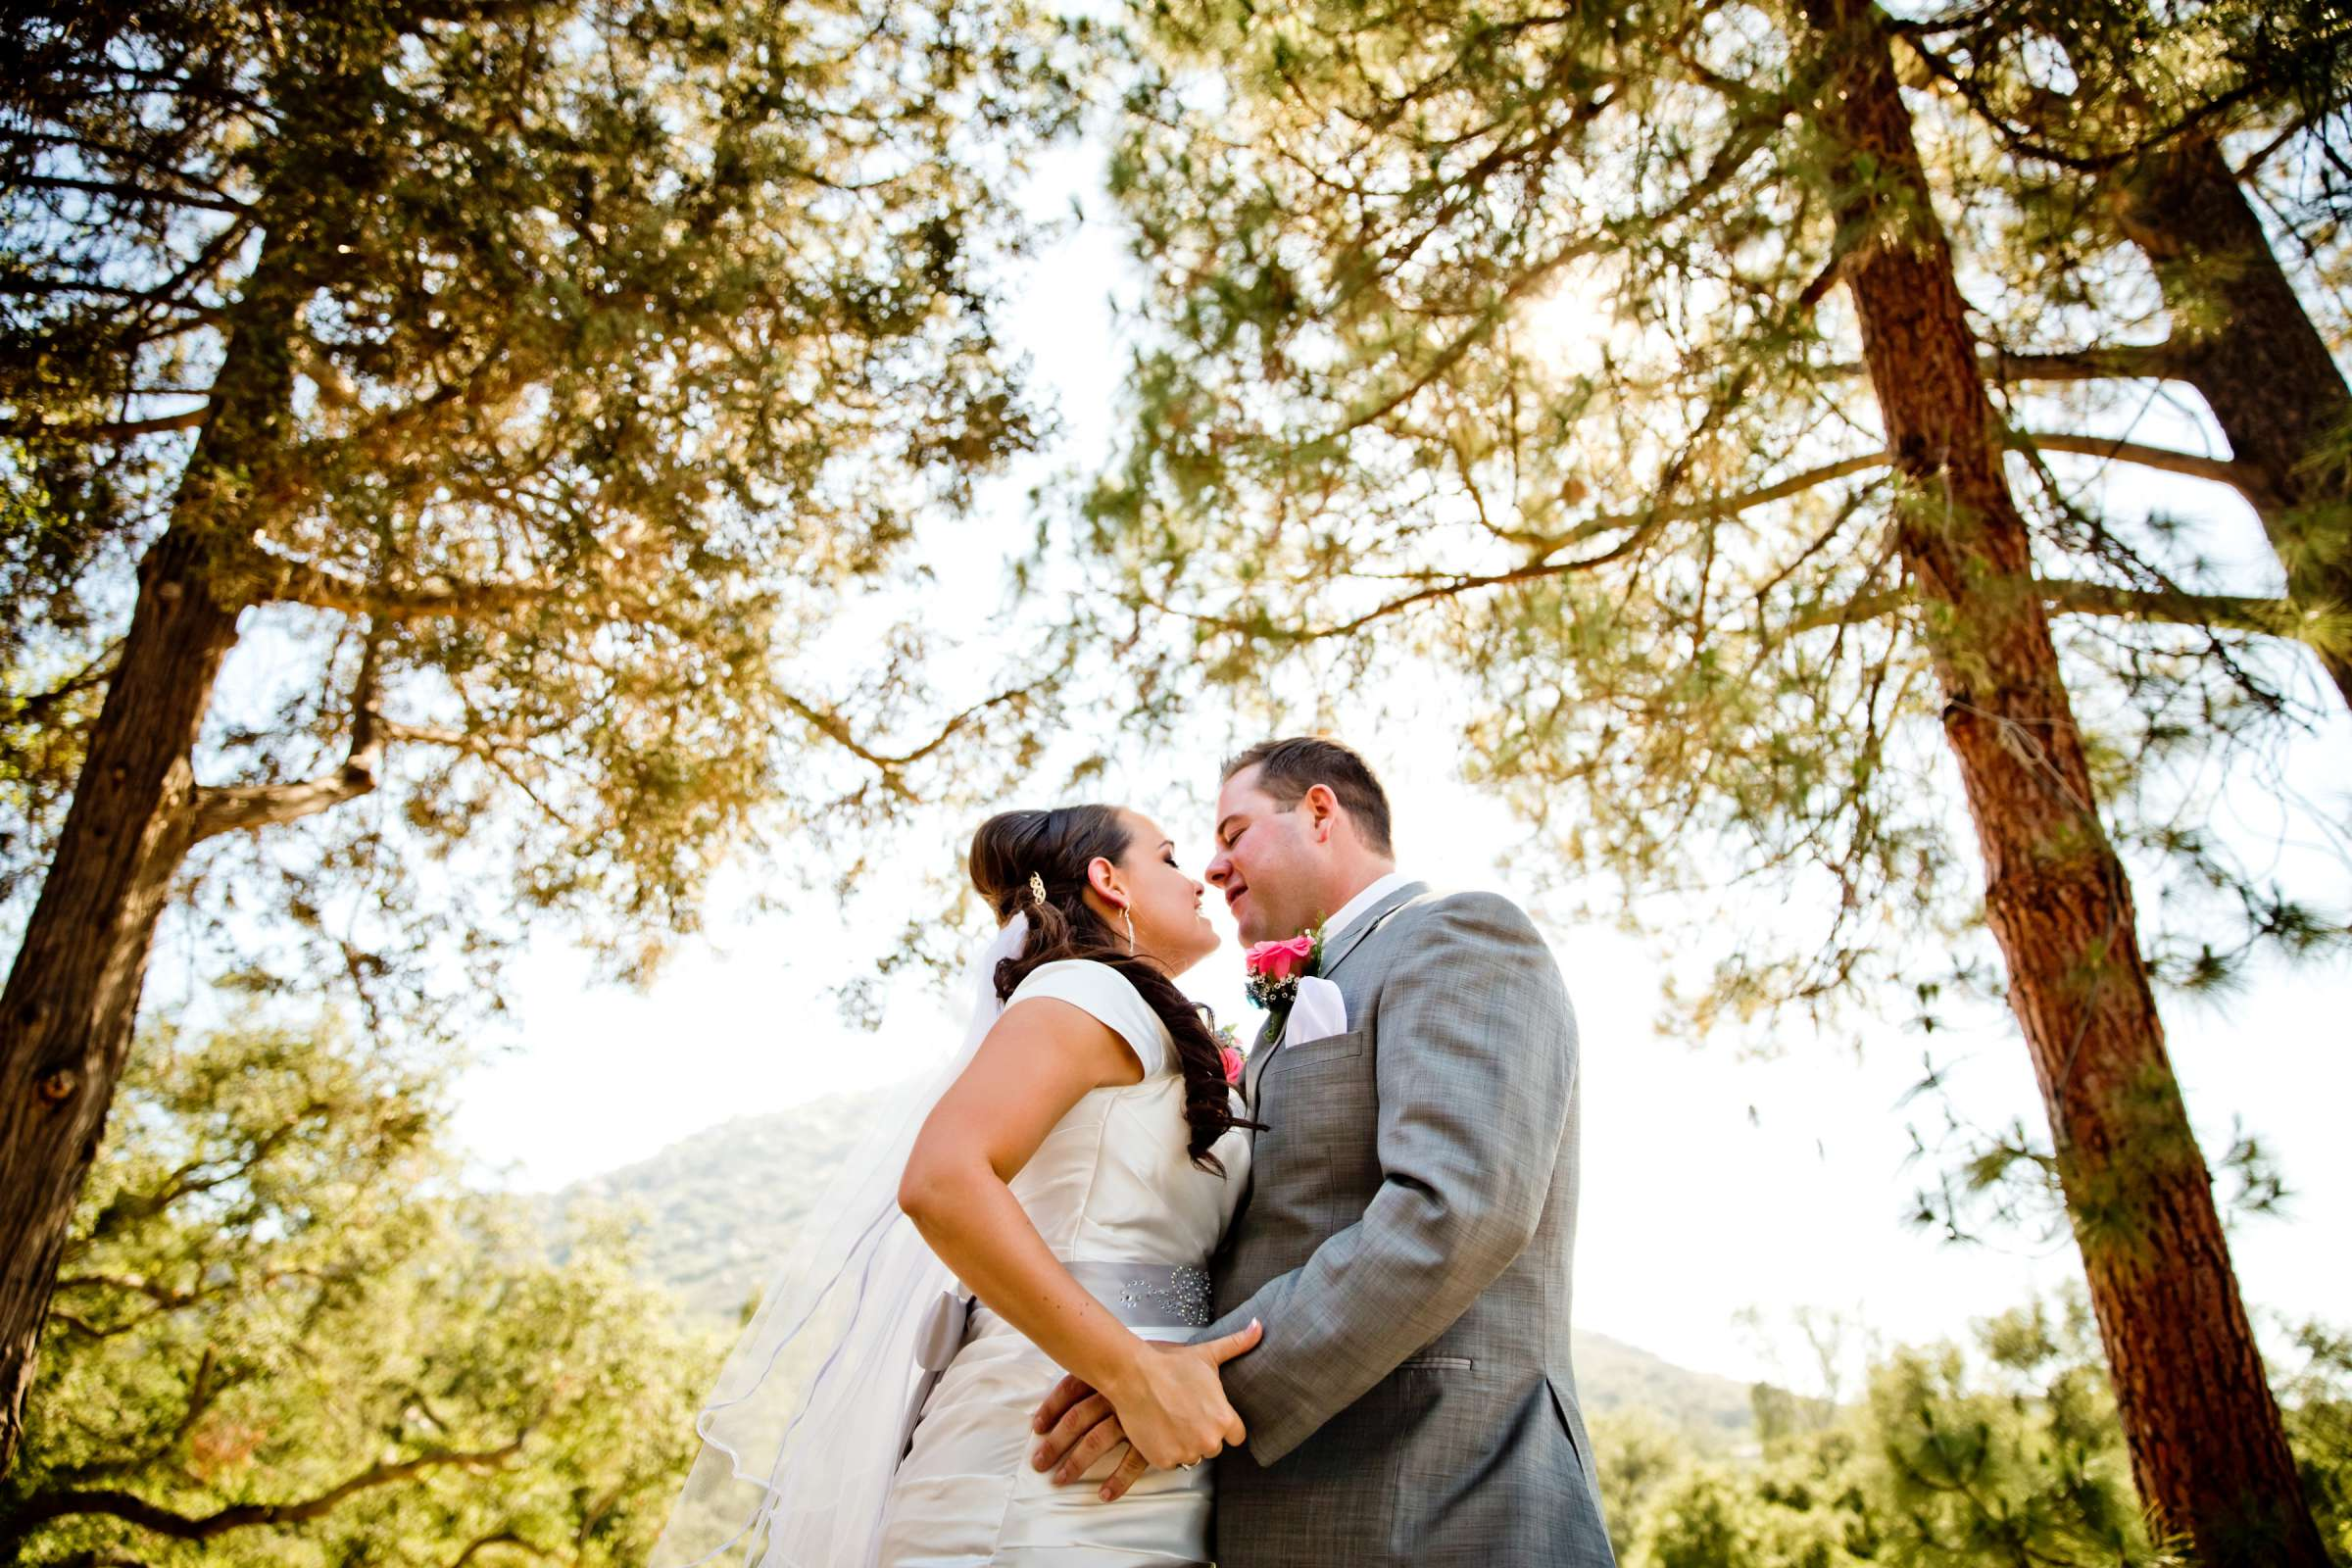 Mt Woodson Castle Wedding, Krista and Donald Wedding Photo #344672 by True Photography